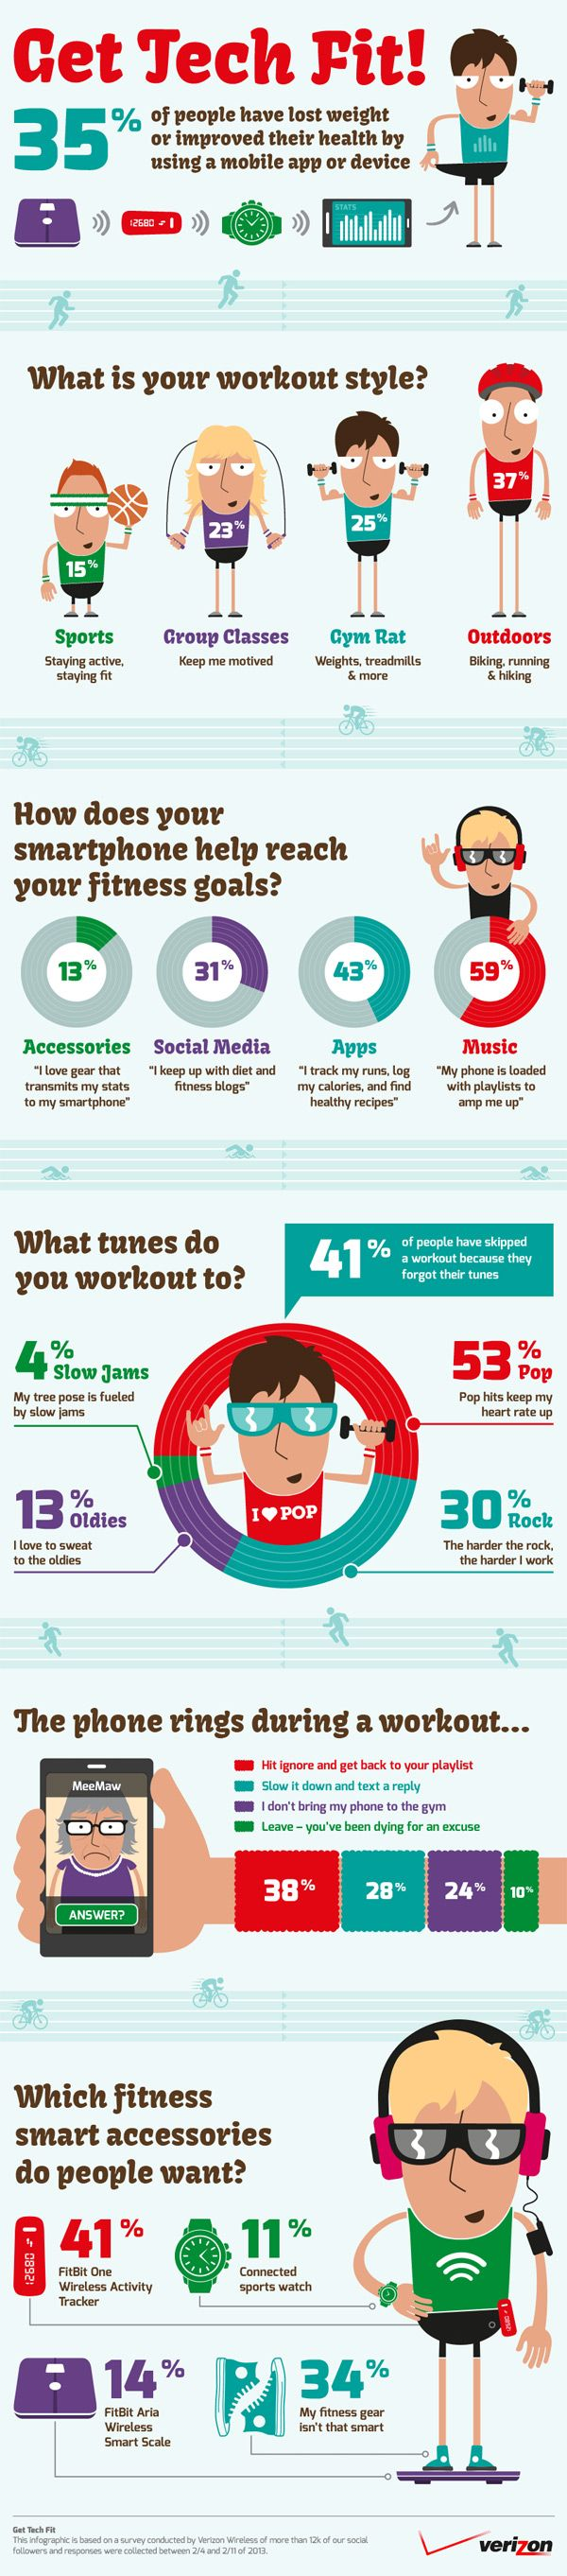 Best images about the benefits of exercise on pinterest